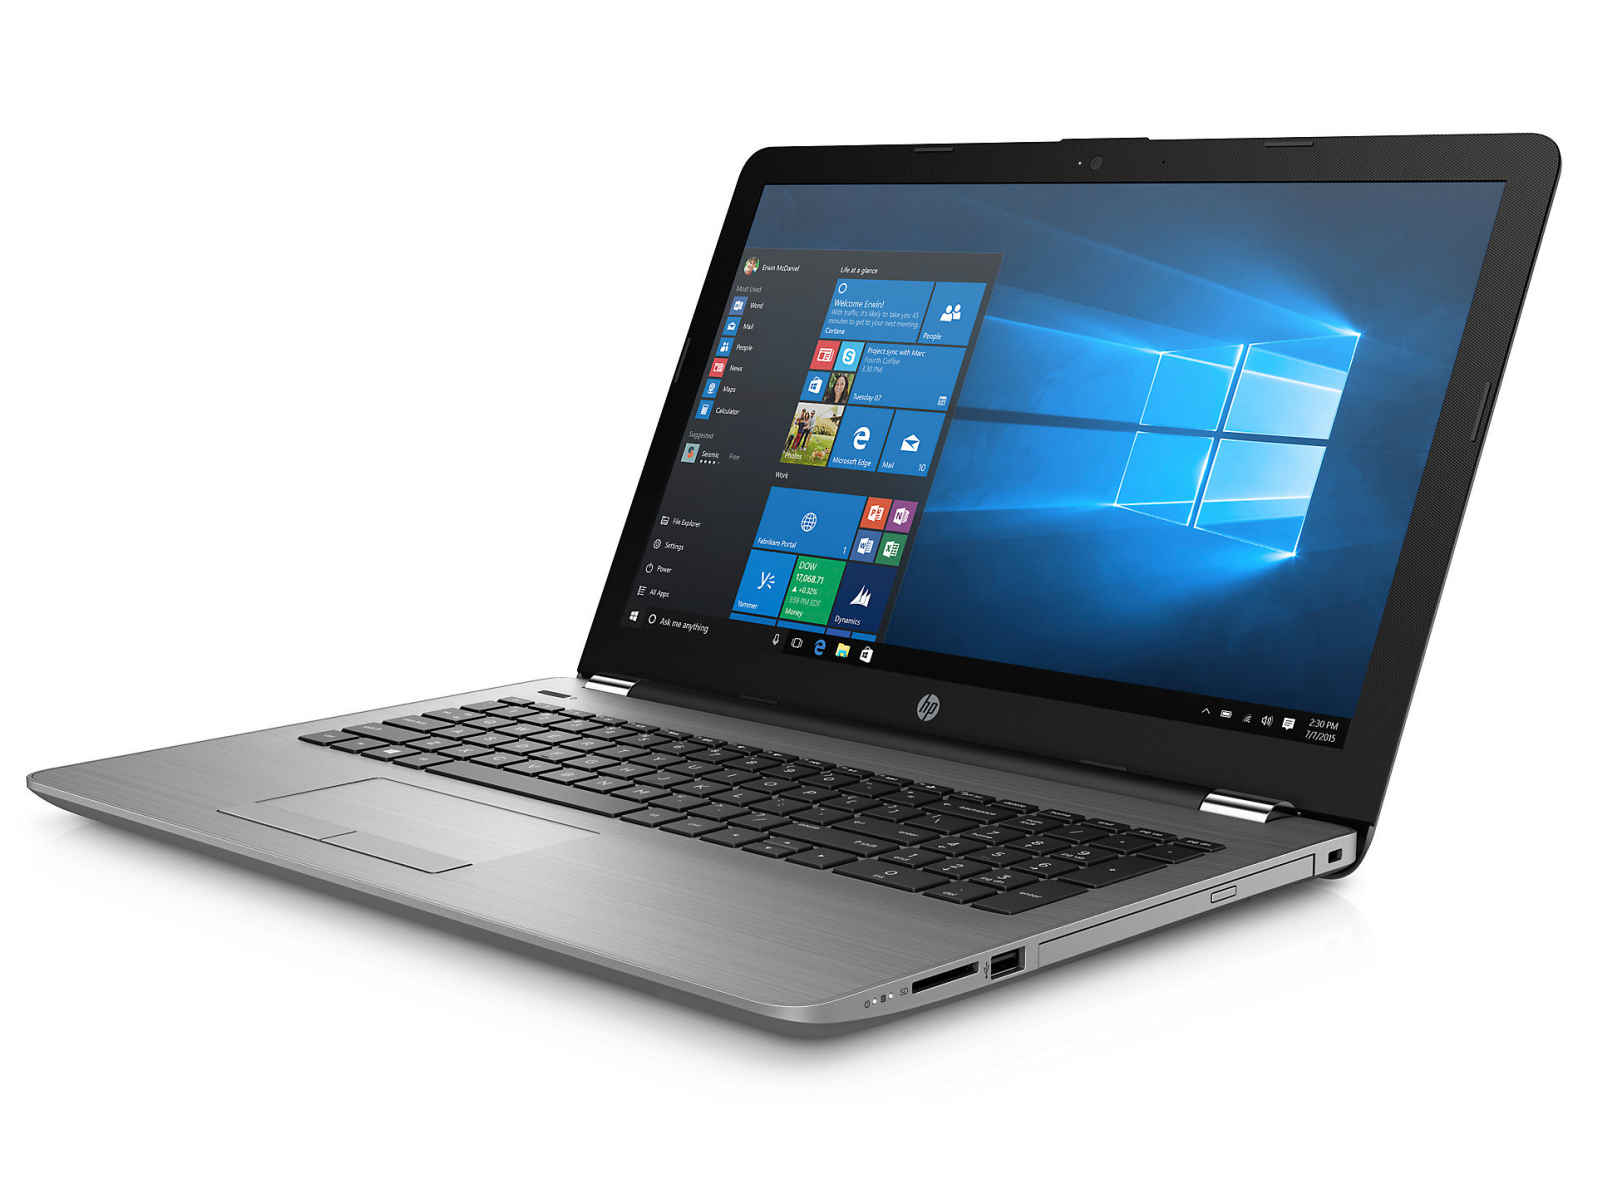 hp 2000 laptop drivers for windows 10 64 bit